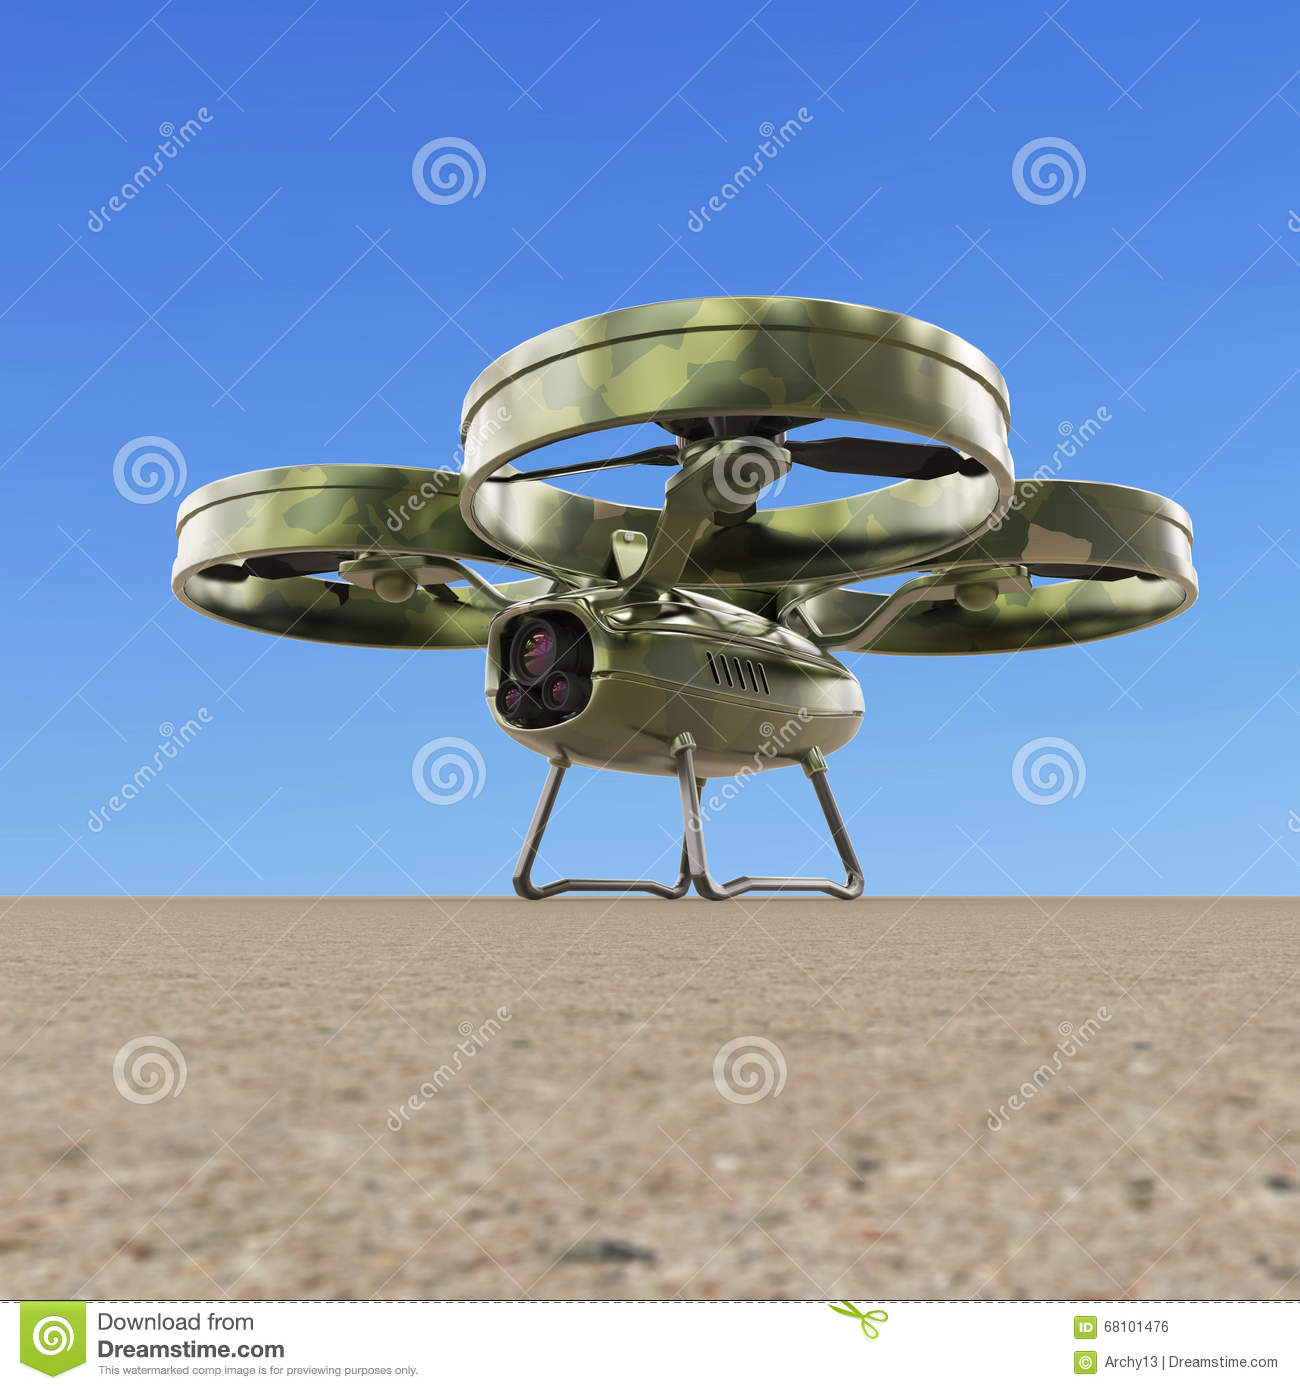 One Military Quadrocopter Drone With Camera Camouflage Paint Render